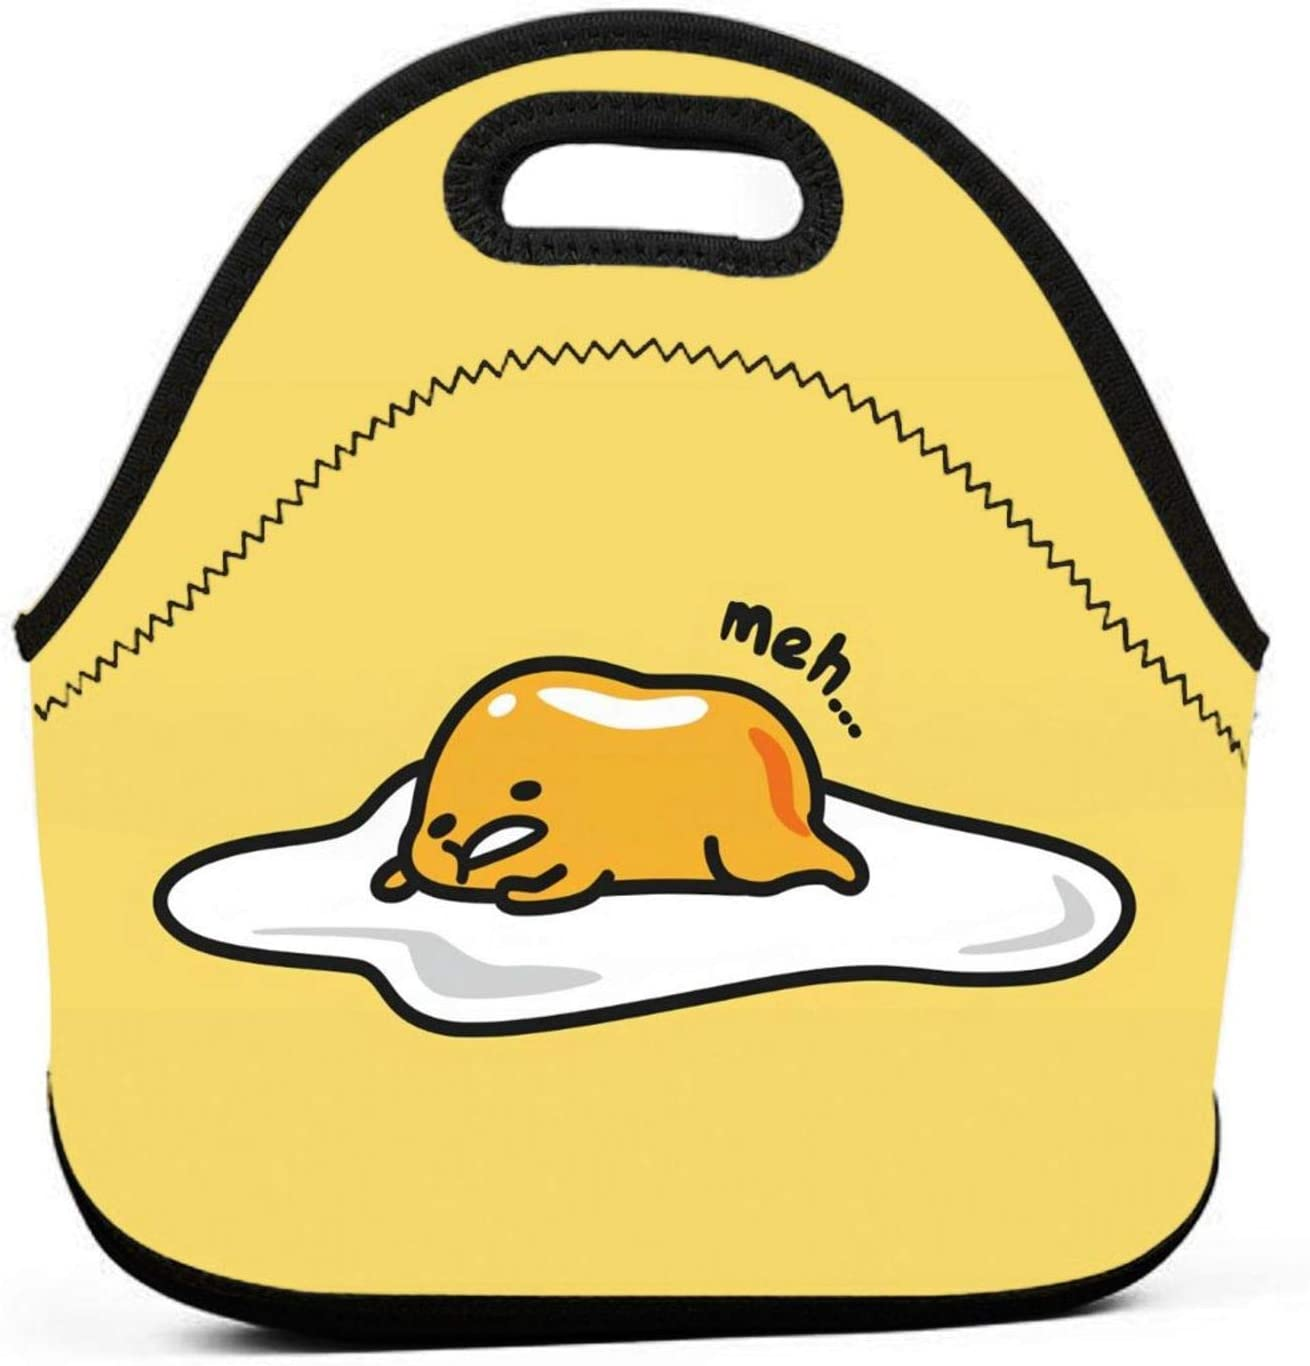 Gudetama Cute Egg Neoprene Lunch Bag Tote Bag Lunch Organizer Thermal Lunch Holder Reusable Lunch Box Insulated Lunch Cooler Bag for Women Men Kids Picnic Work School